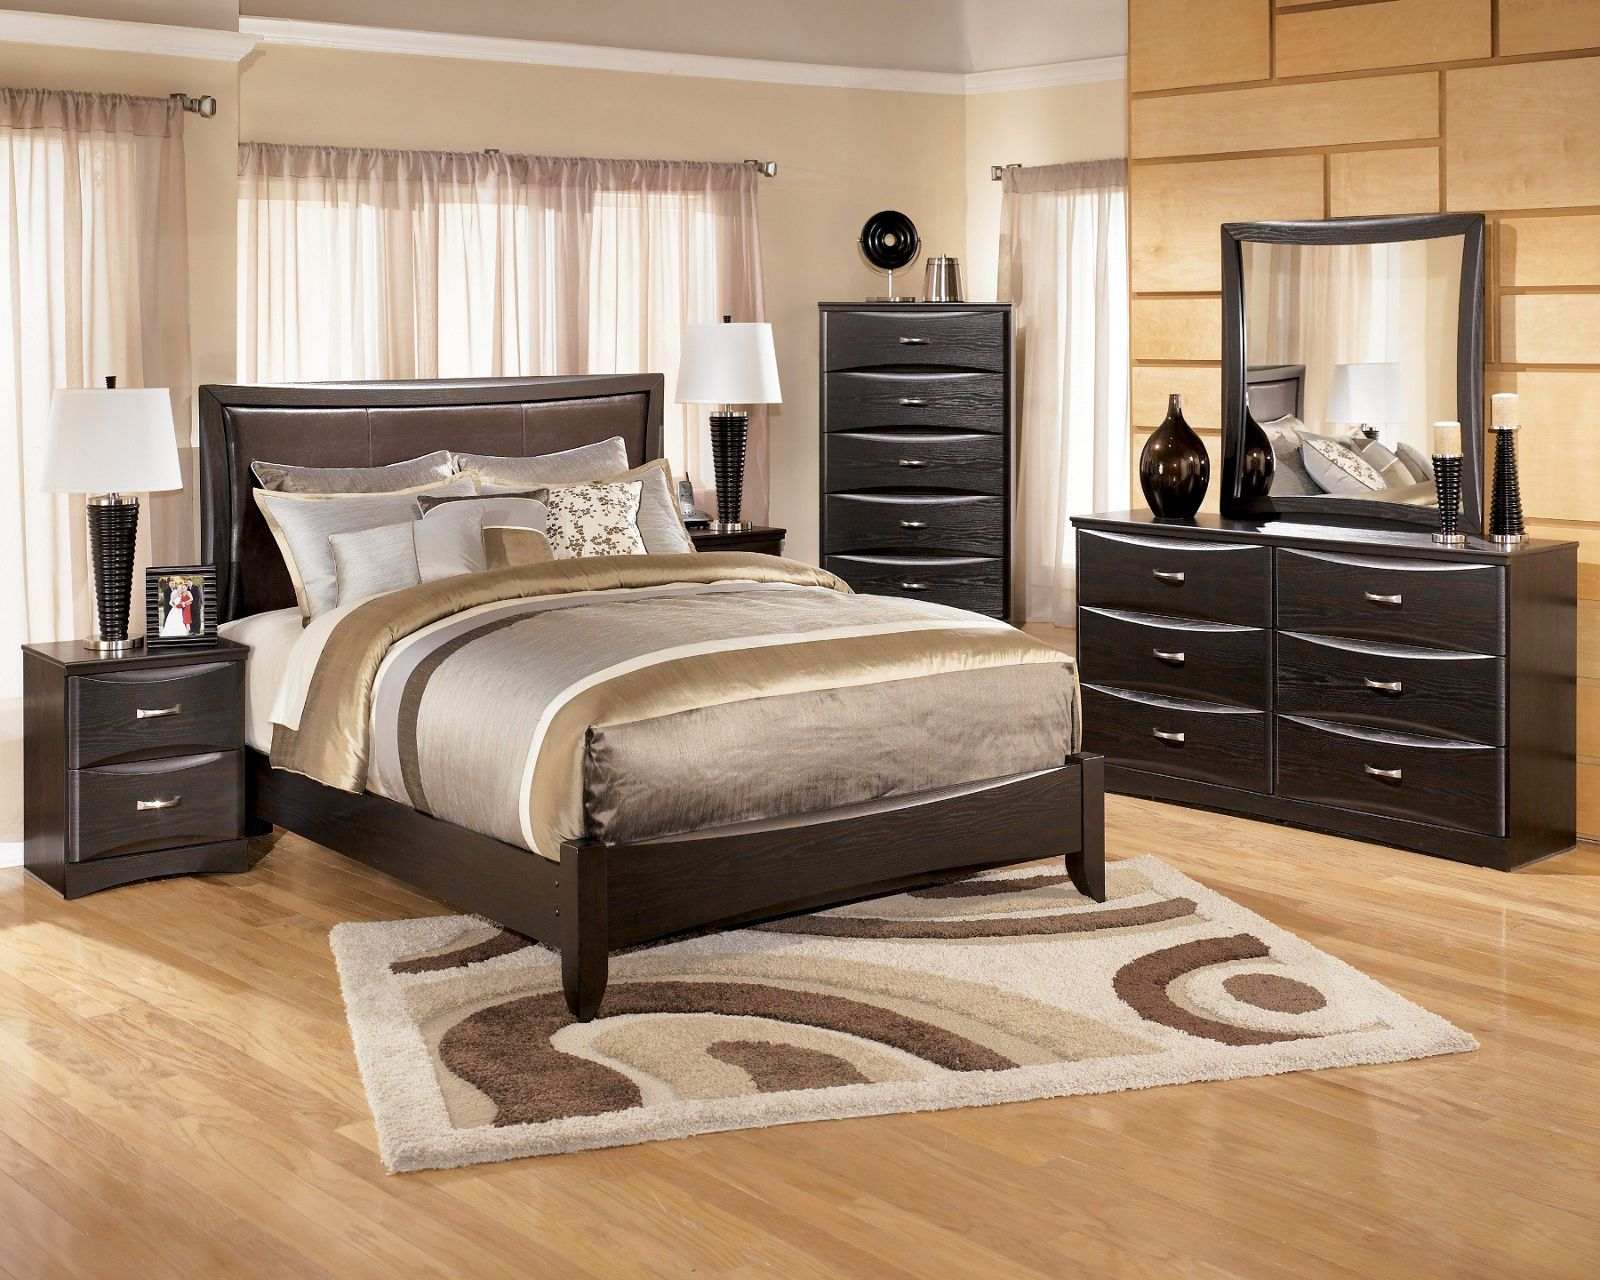 Home decorating pictures ashley furniture set for 3 bedroom set